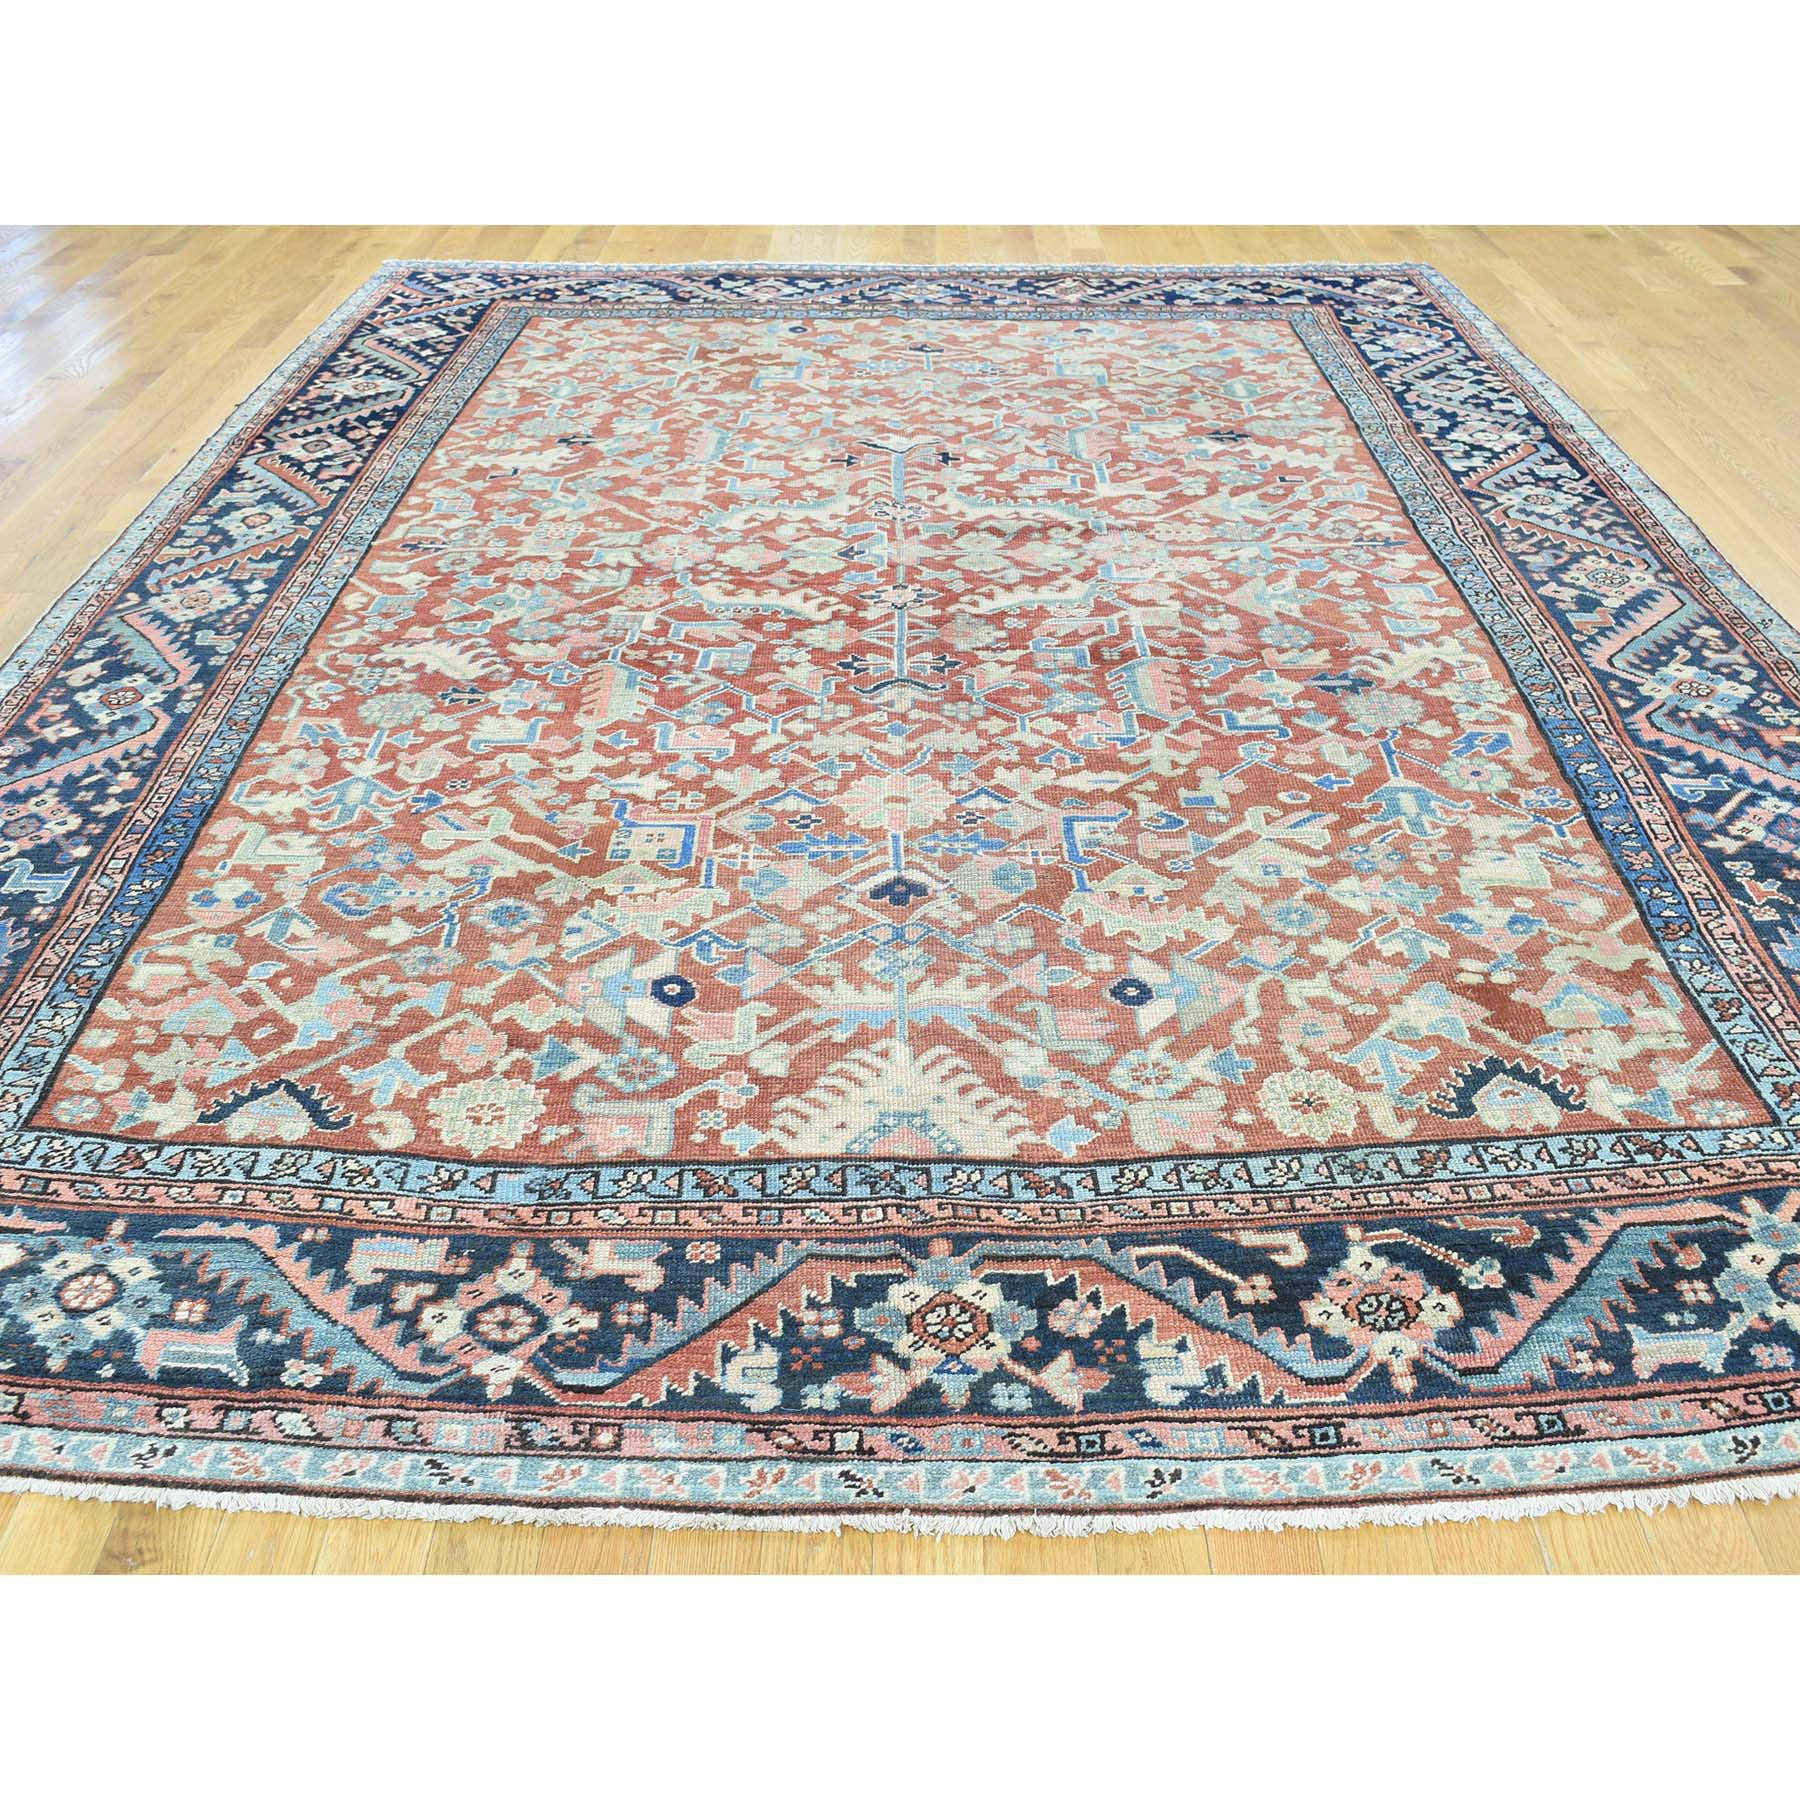 "Handmade Antique Rectangle Rug > Design# SH32139 > Size: 8'-7"" x 11'-8"" [ONLINE ONLY]"